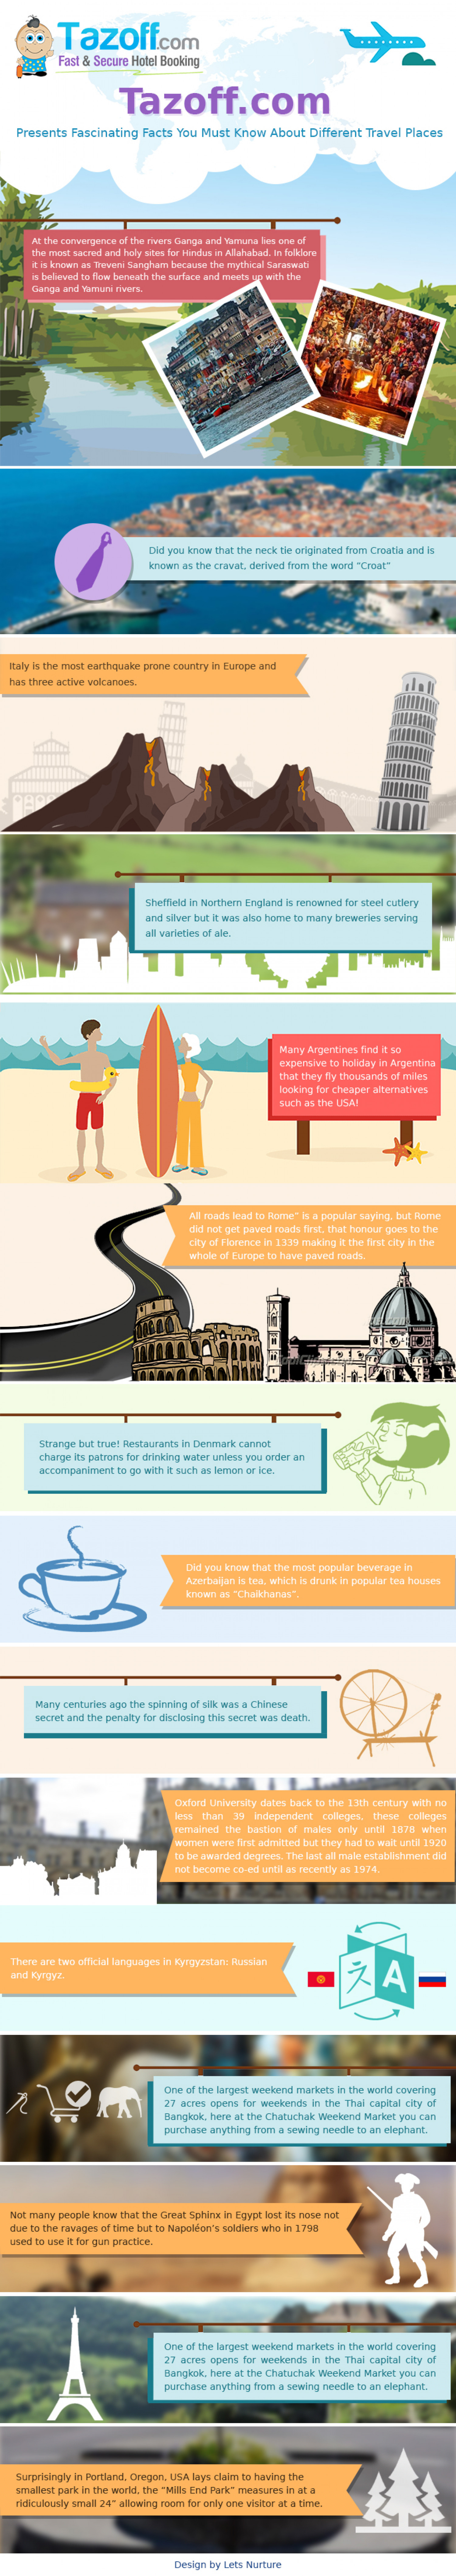 Tazoff.com Presents Fascinating Facts You Must Know About Different Travel Places Infographic